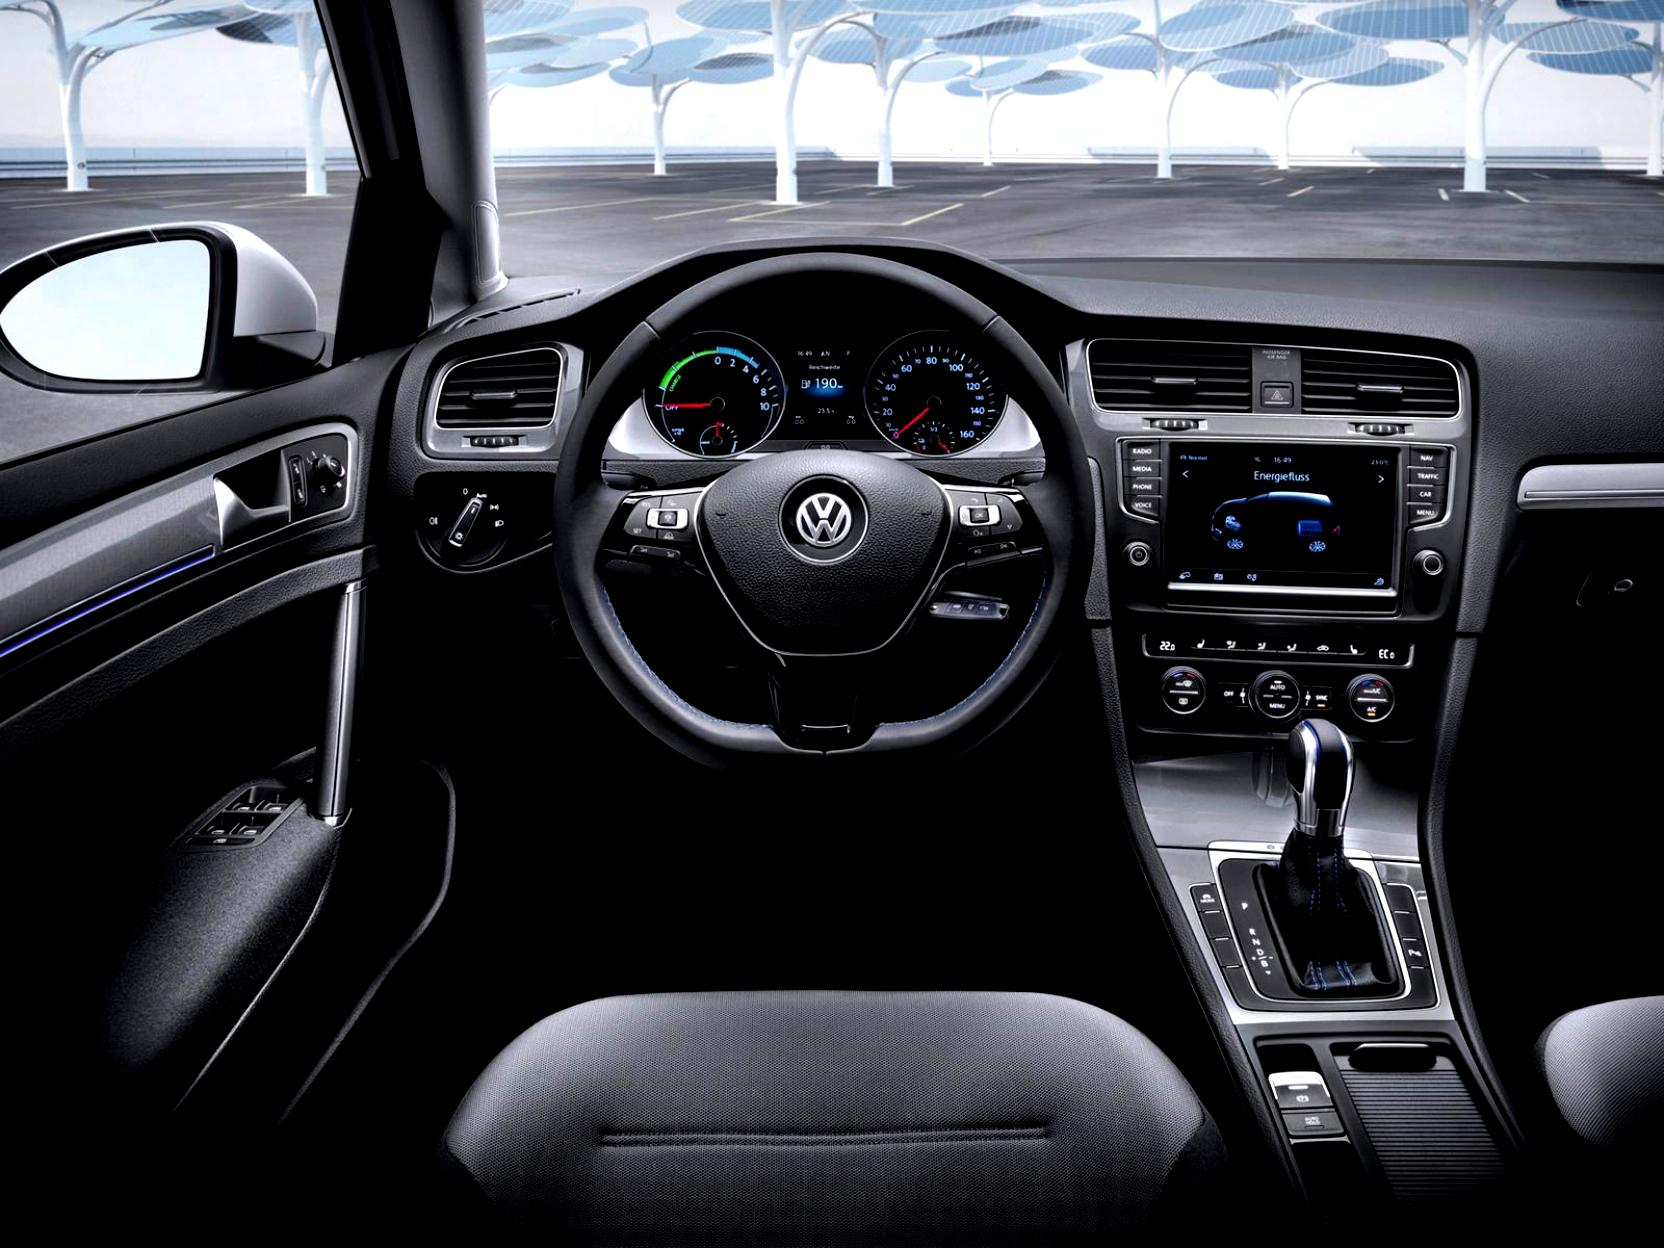 Volkswagen E-Golf 2014 #55